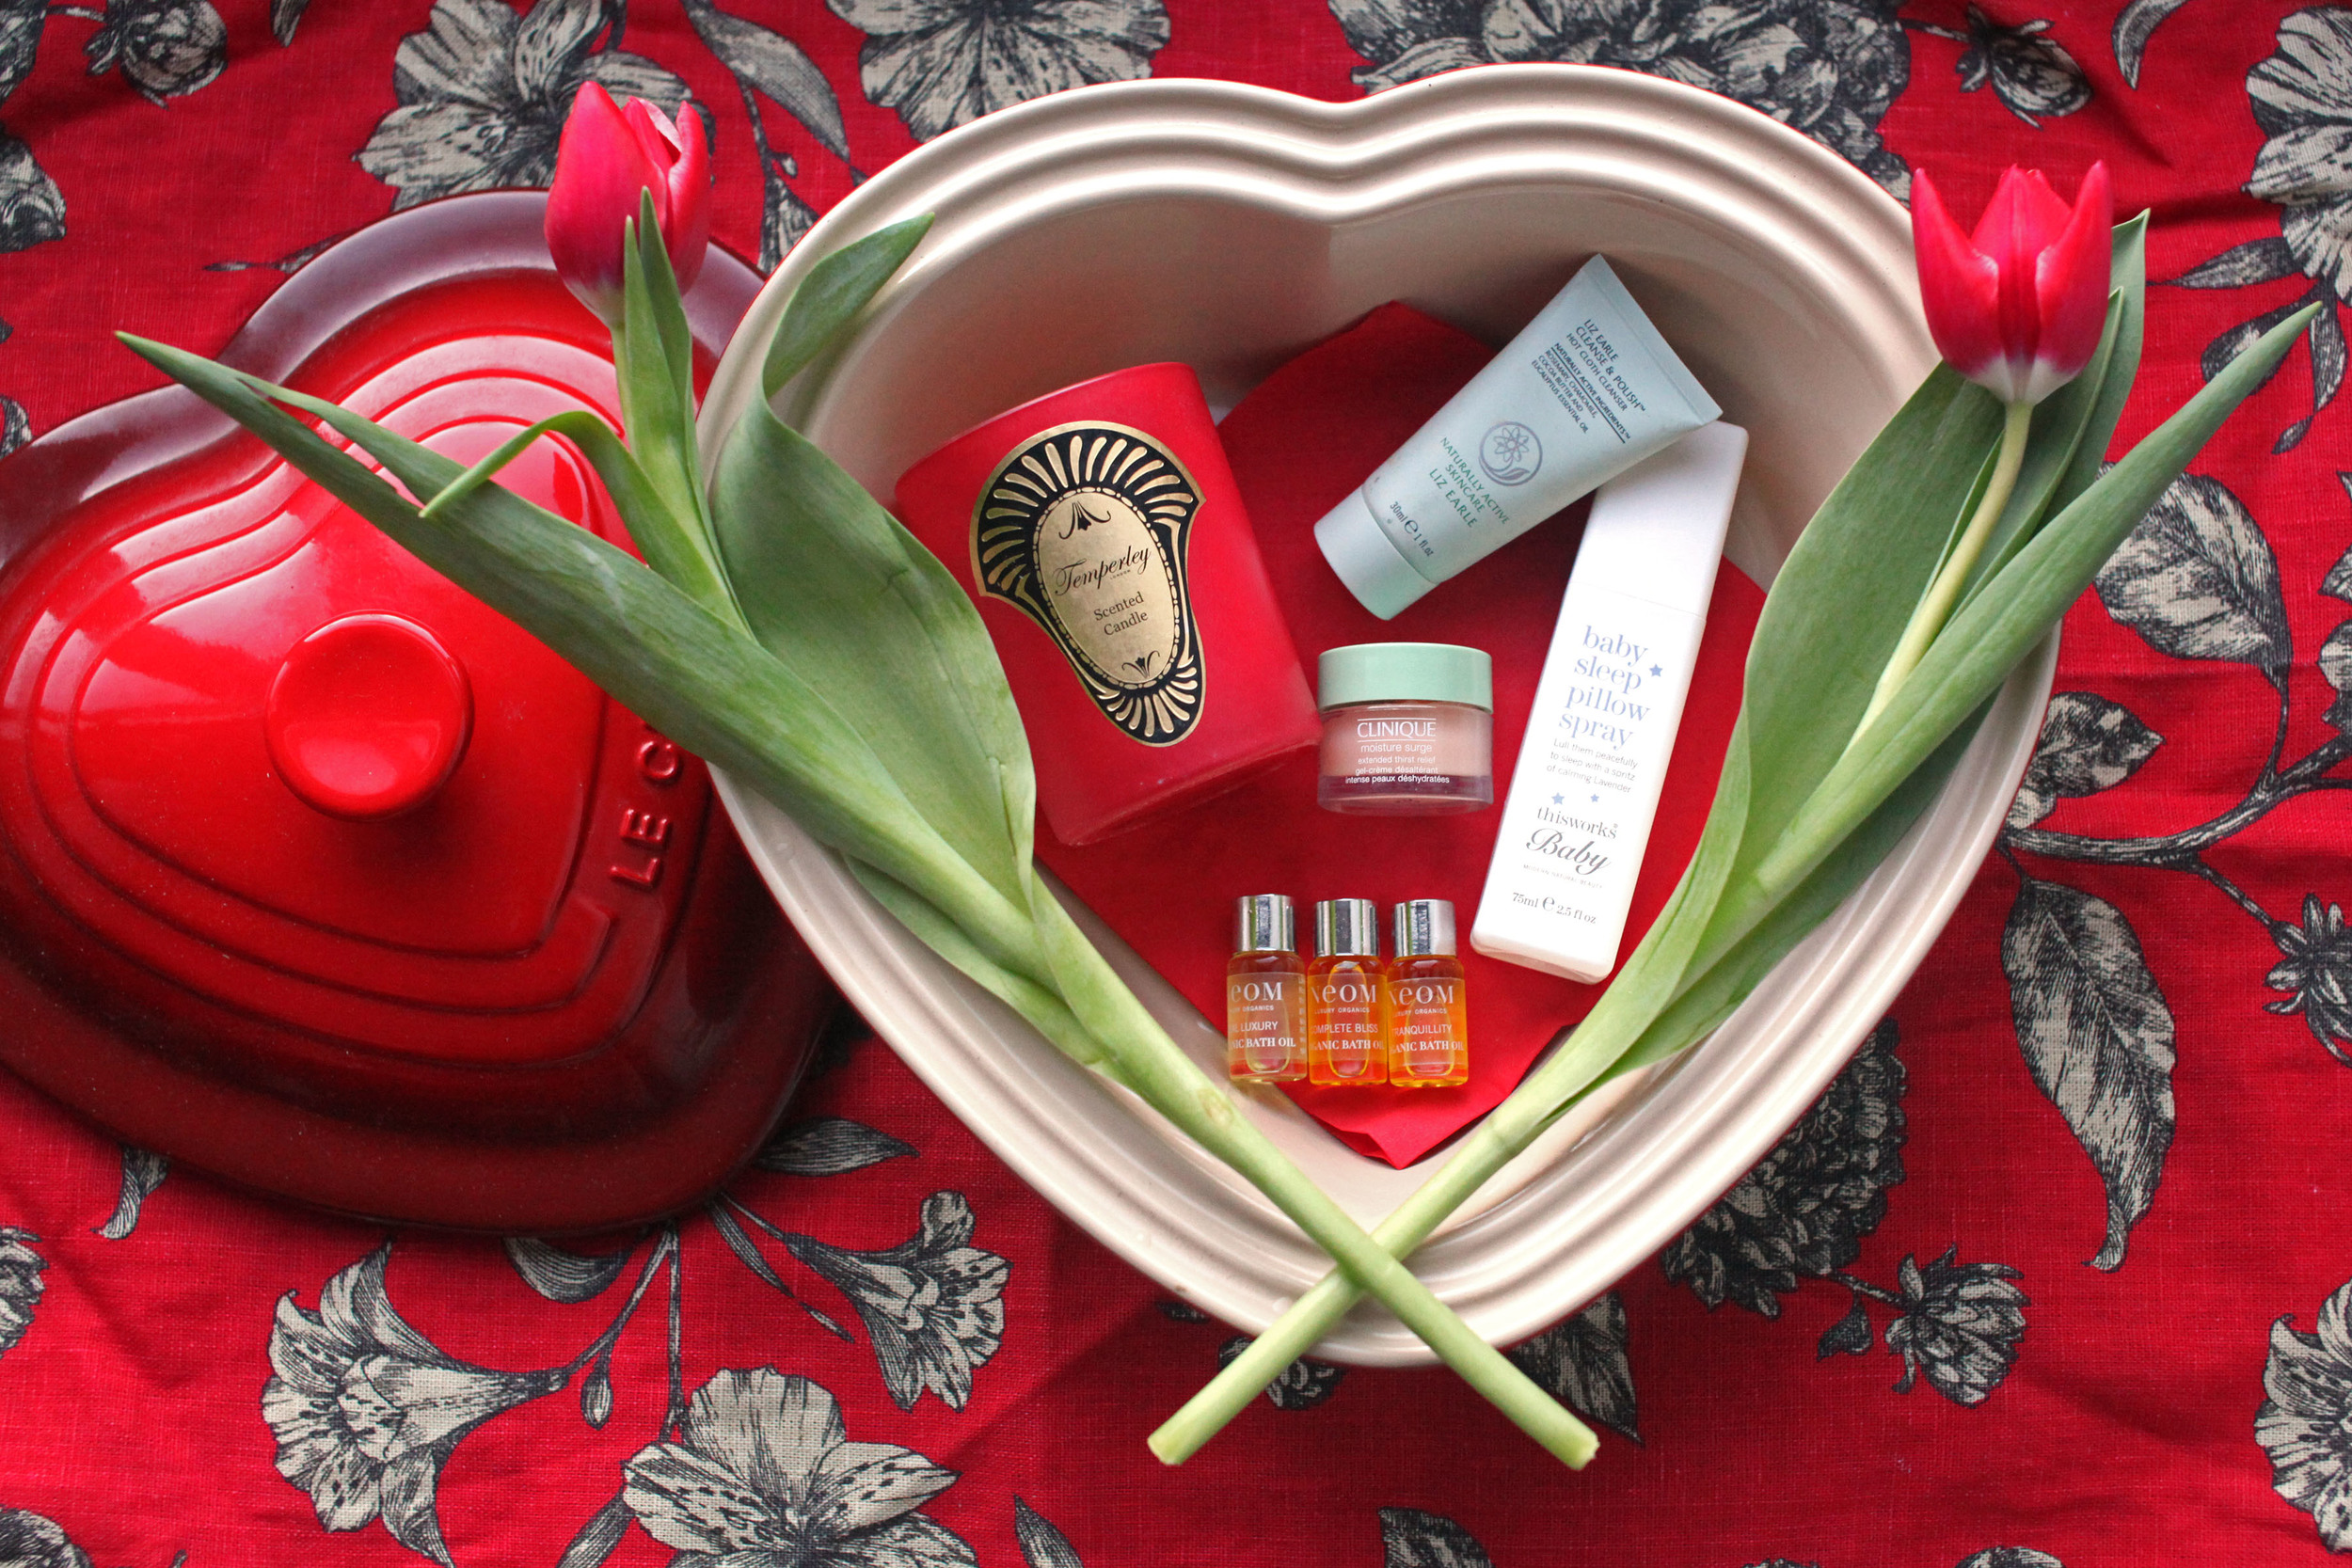 Pamper treats by Neom, Liz Earle, Alice Temperley, Clinique & This Works